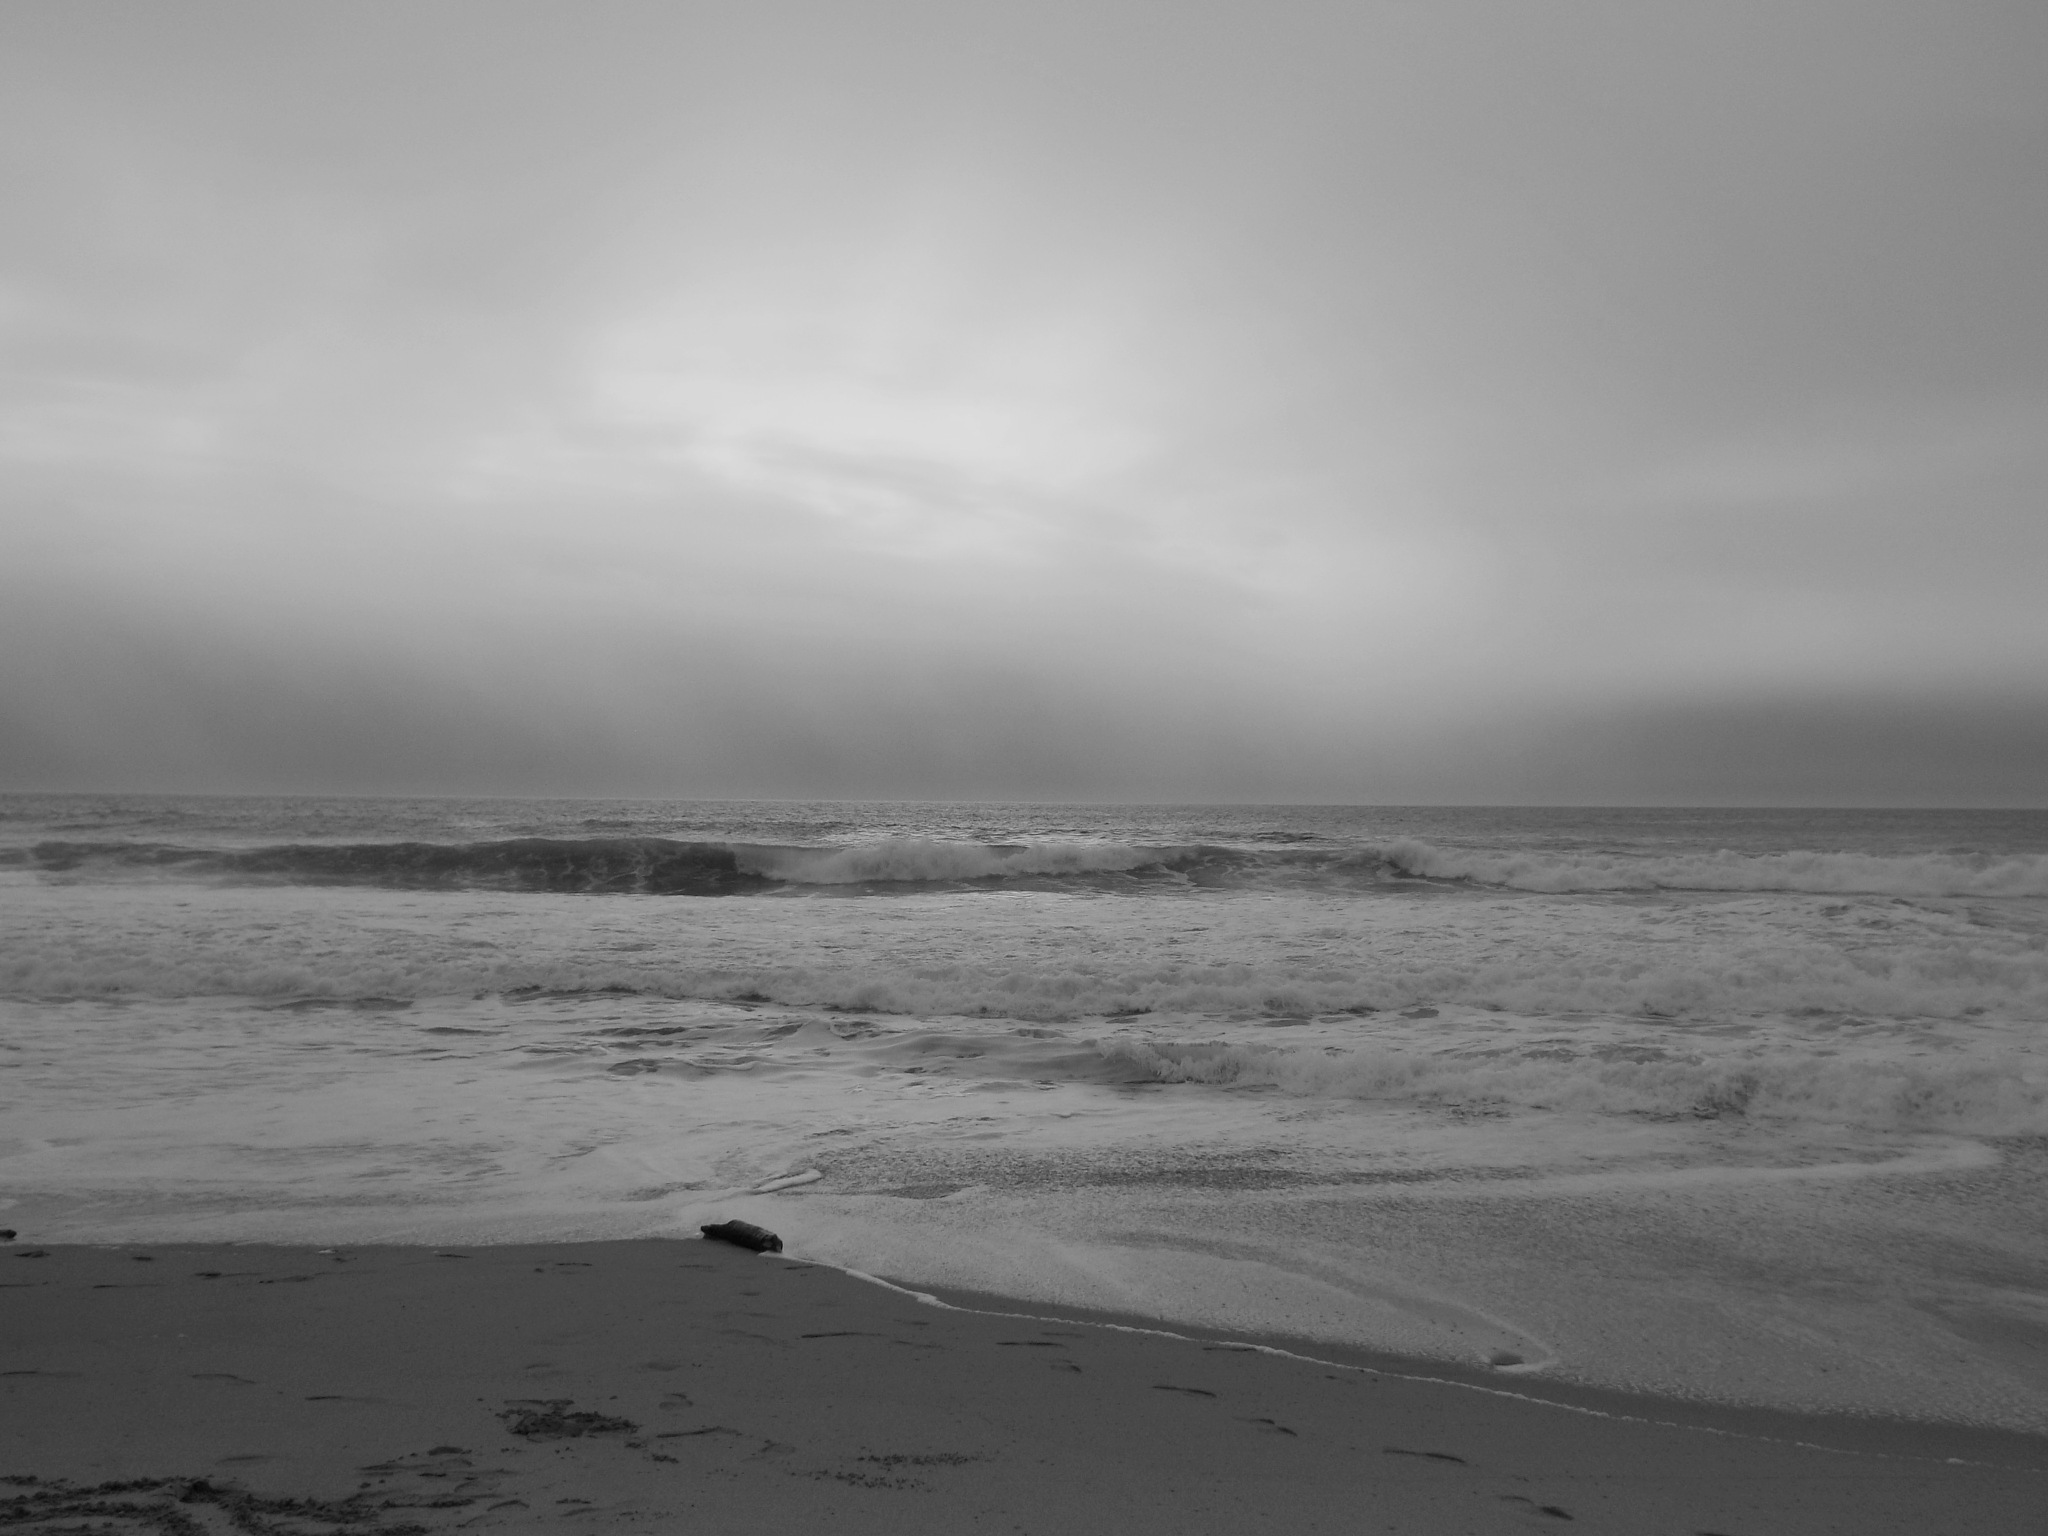 PACIFIC SUNSET, B&W, FULL SCREEN by Akin Saner